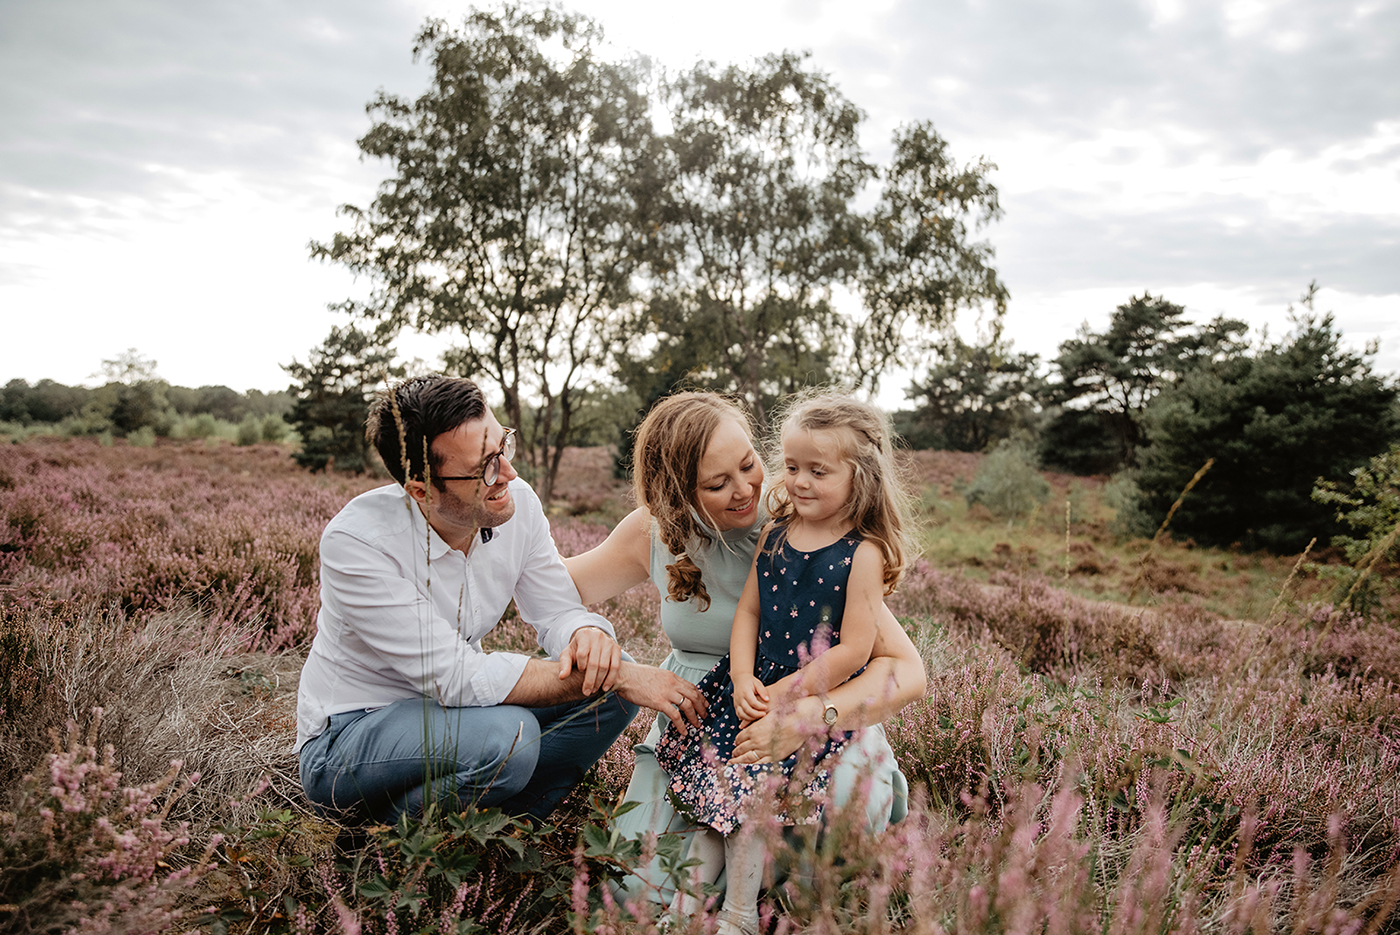 Familienshooting in Holland